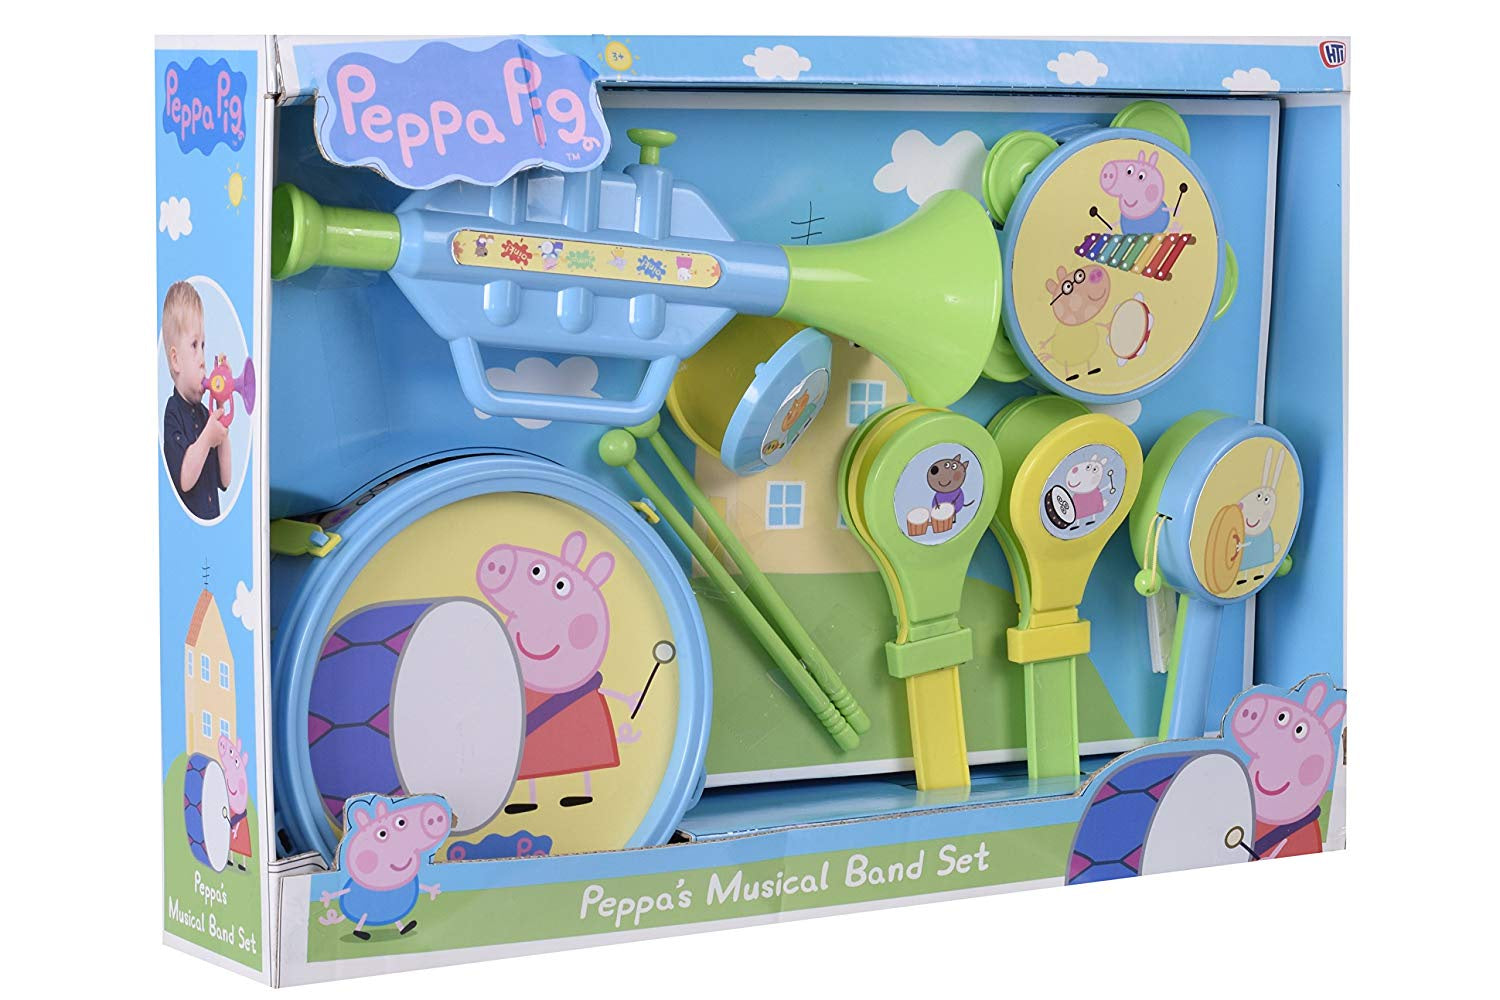 Peppa Pig Peppa's Musical Band Set